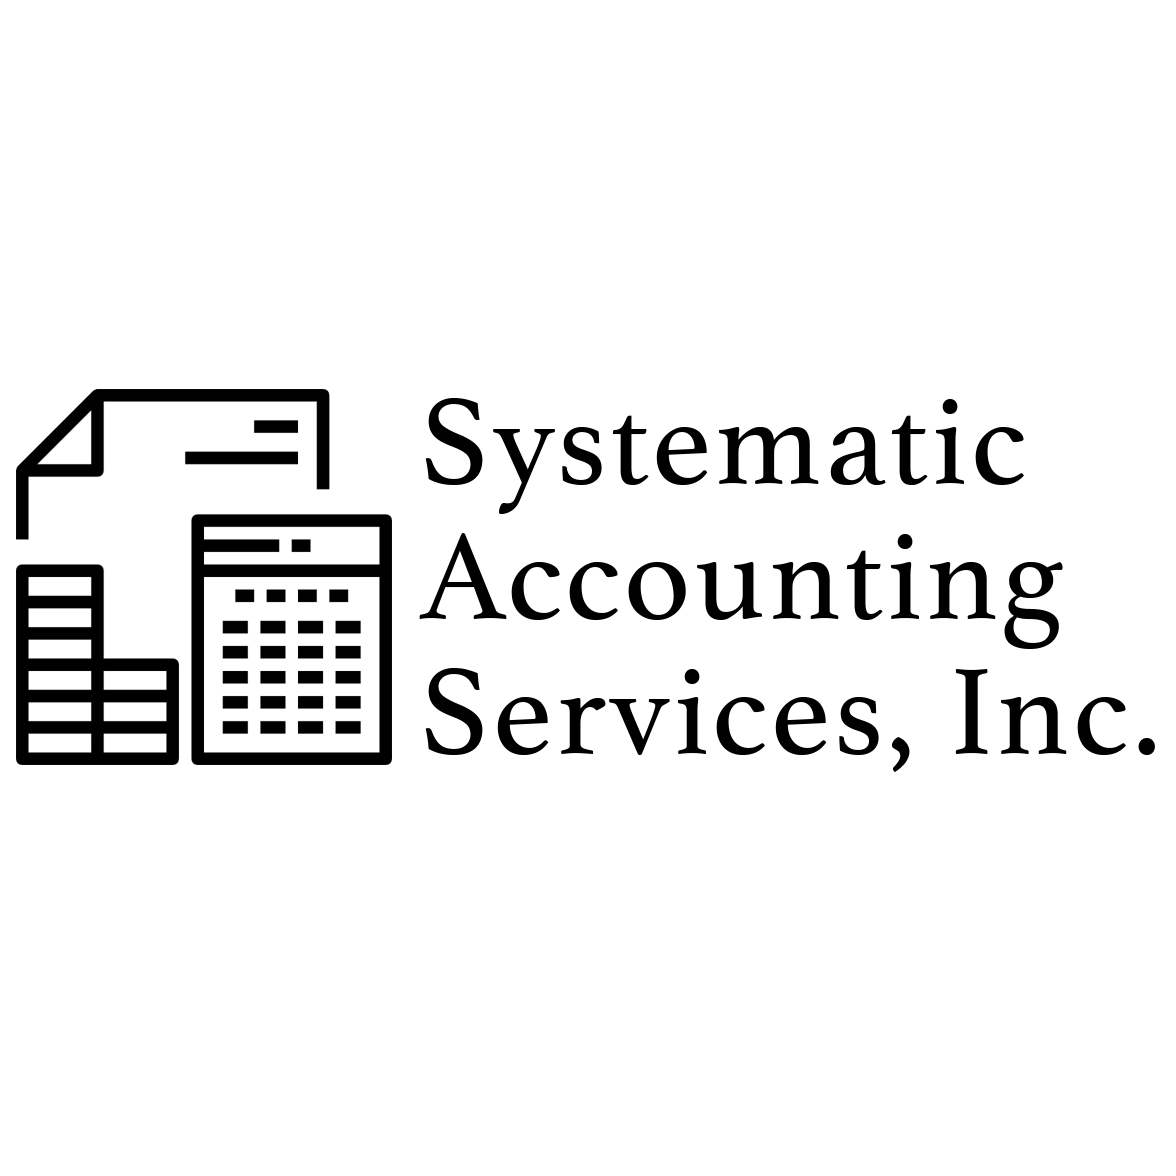 Systematic Accounting Services, Inc